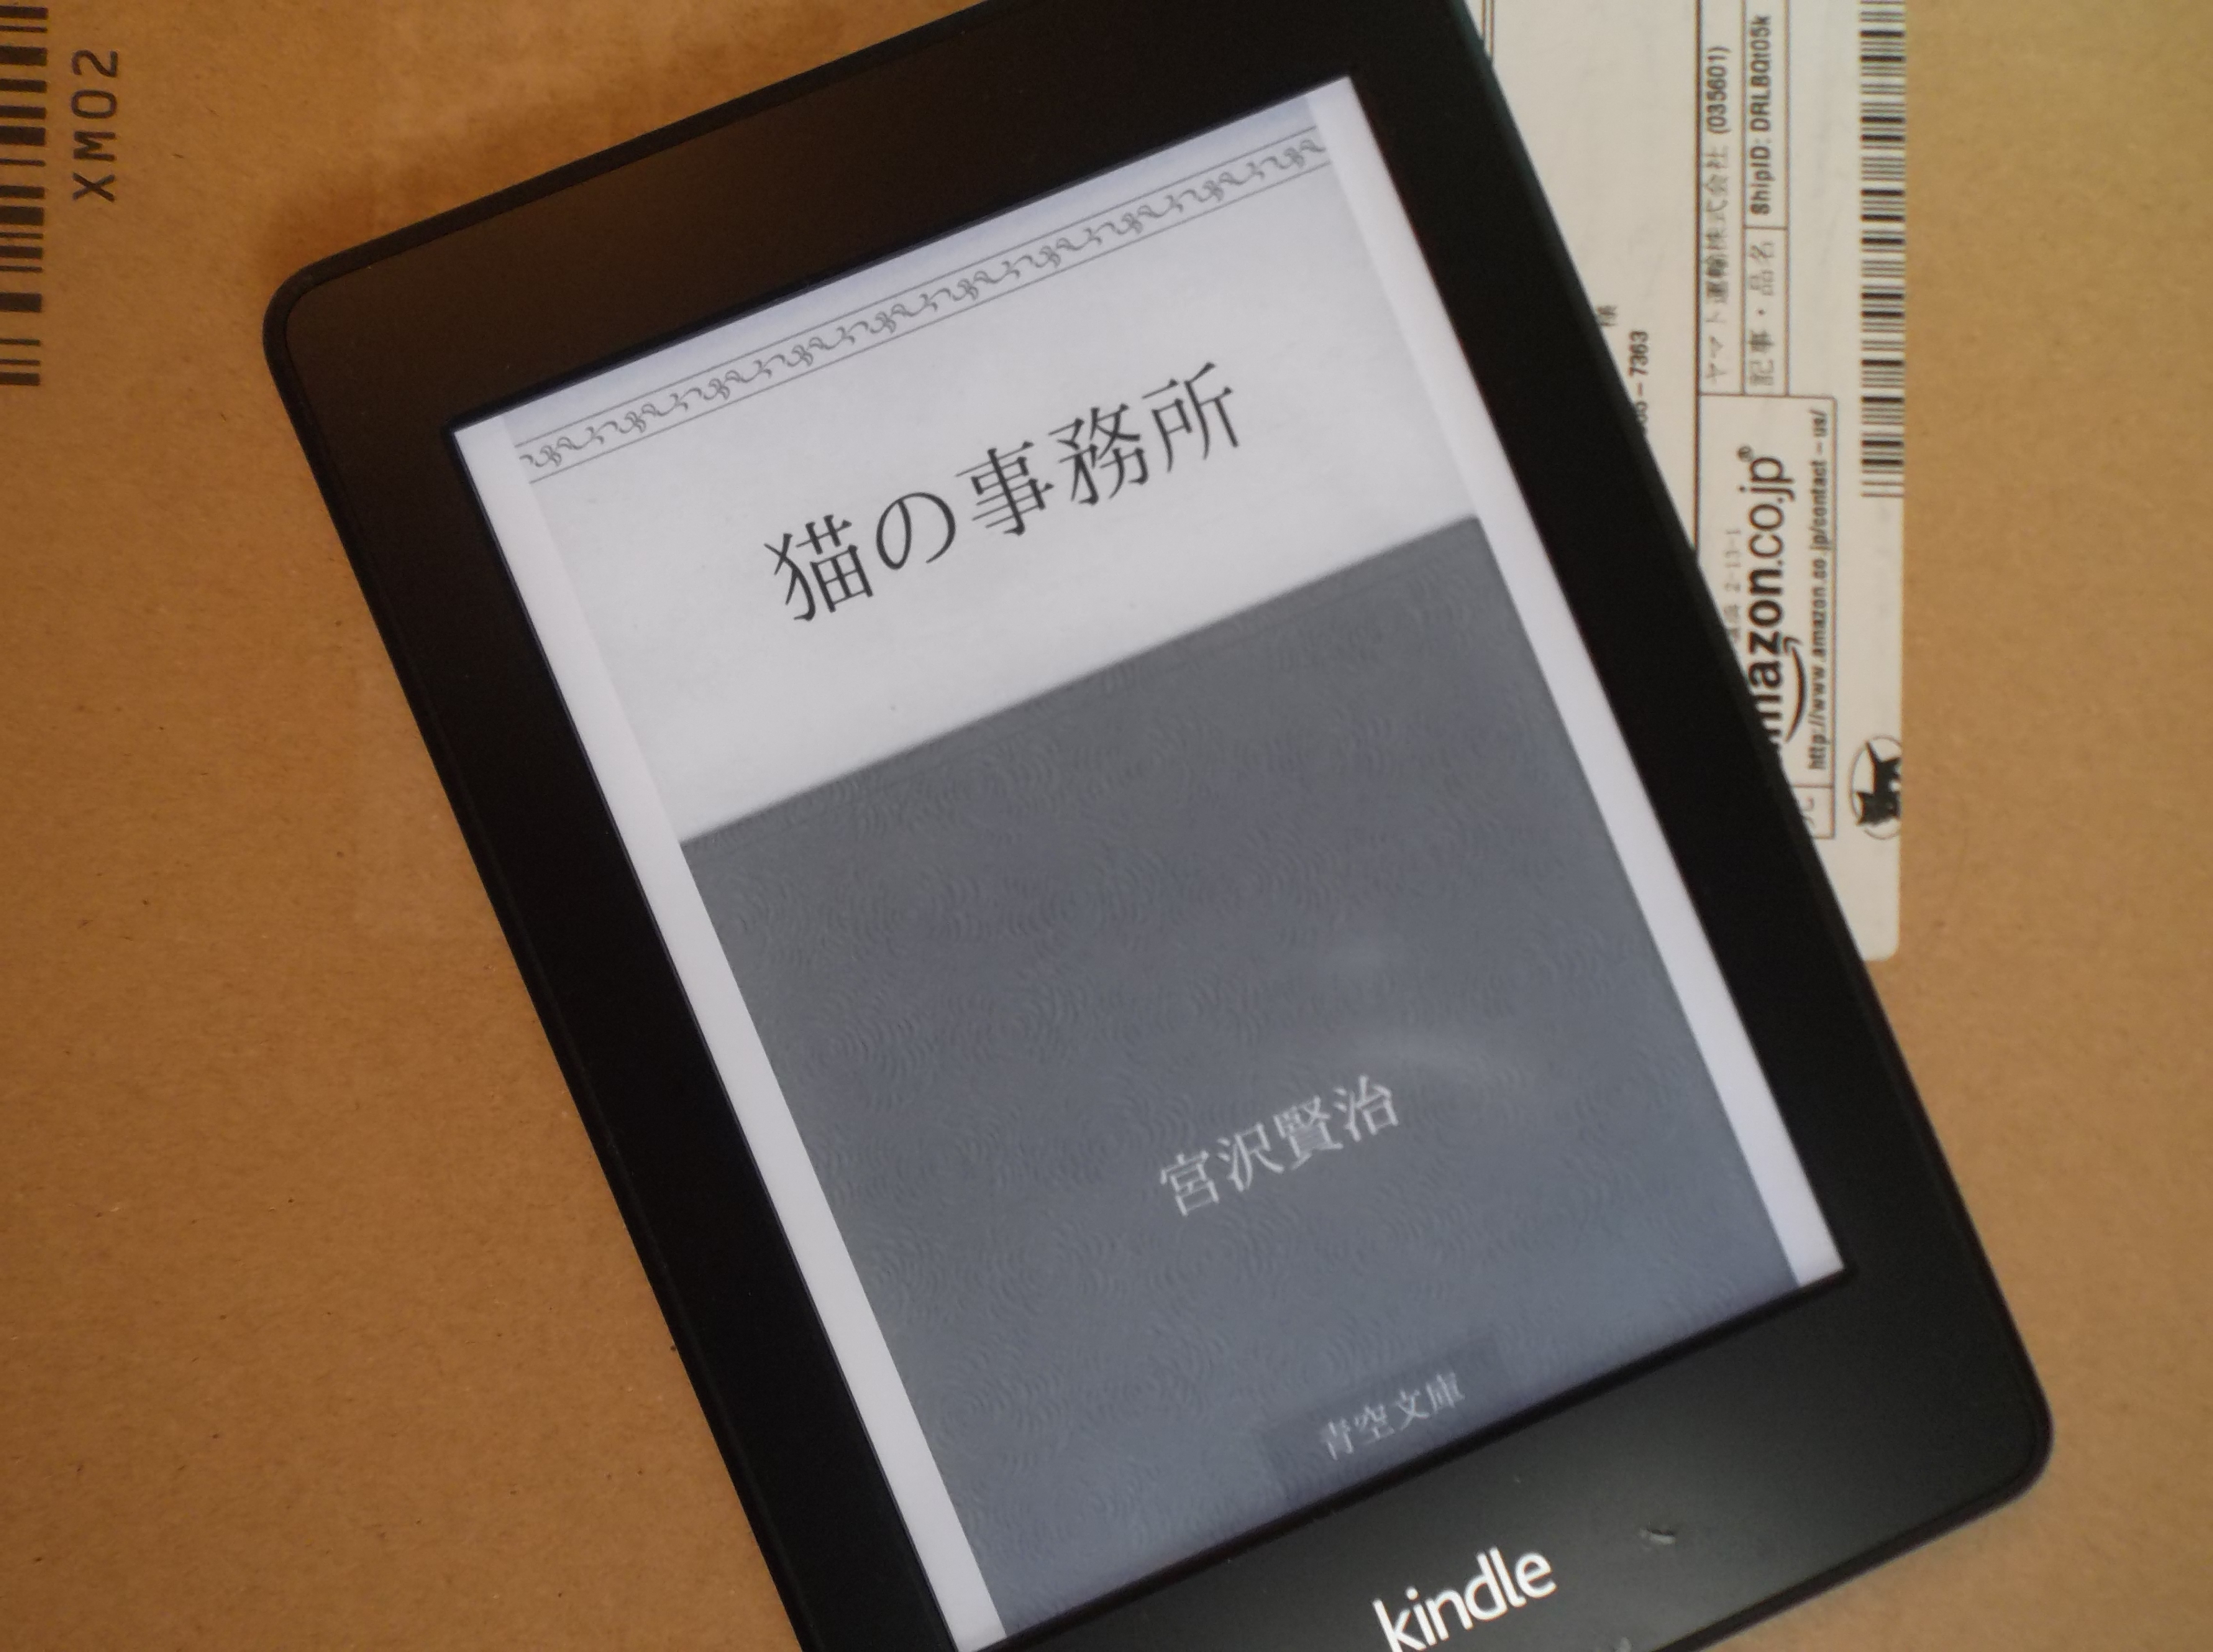 Got This Free Public Domain Book Not Planning To Read It, Just Playing  With The Kindle